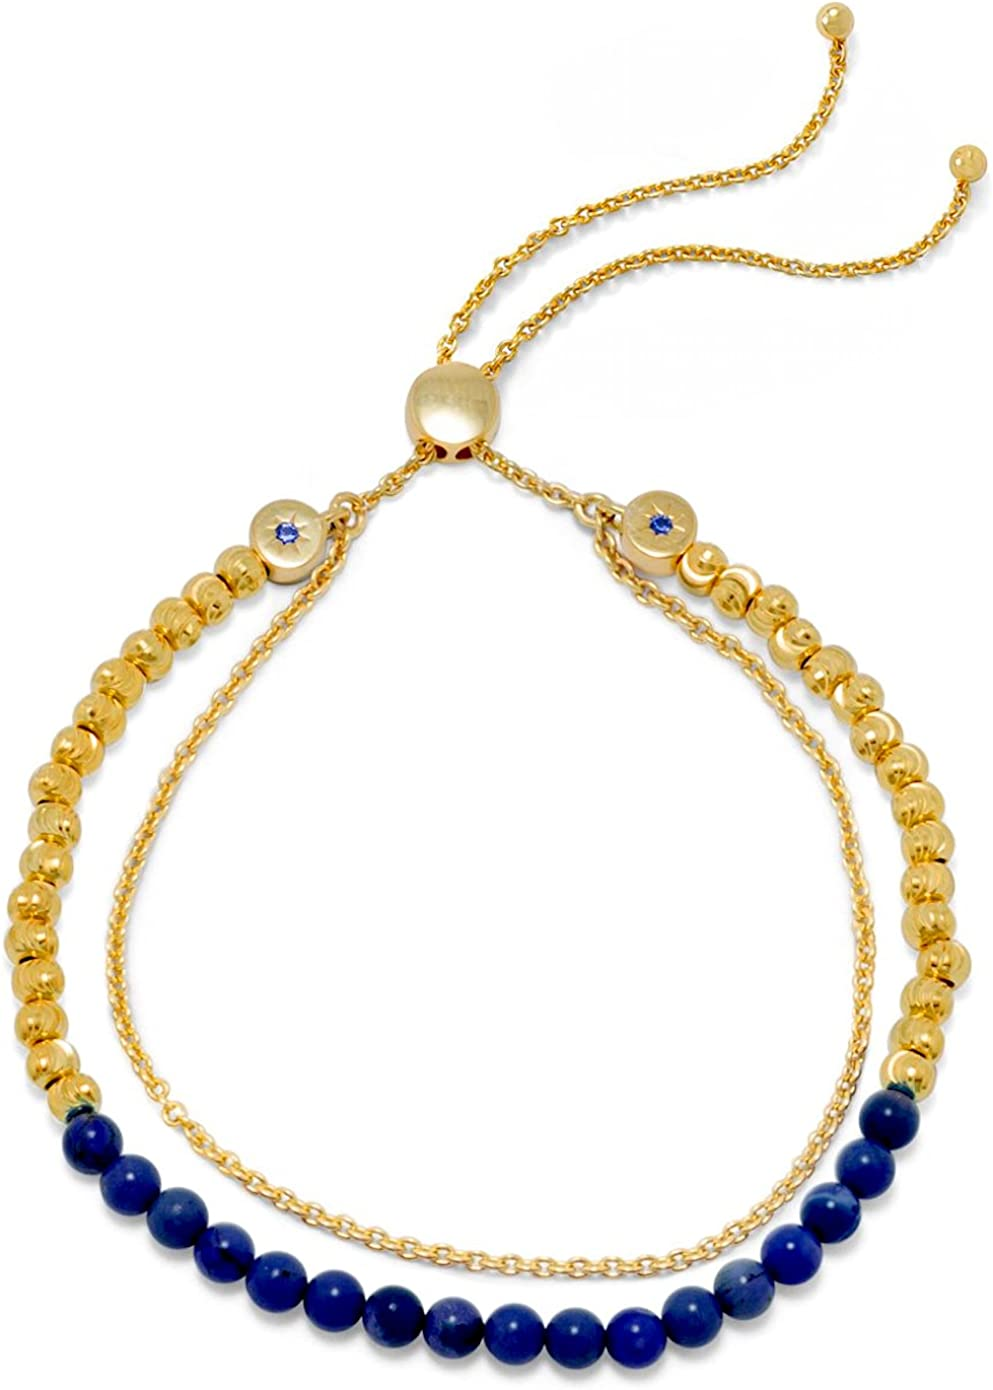 Adjusts to 11 inches Lapis 4mm Beads 18K Gold Plated Sterling 2-Strand Bolo Bracelet